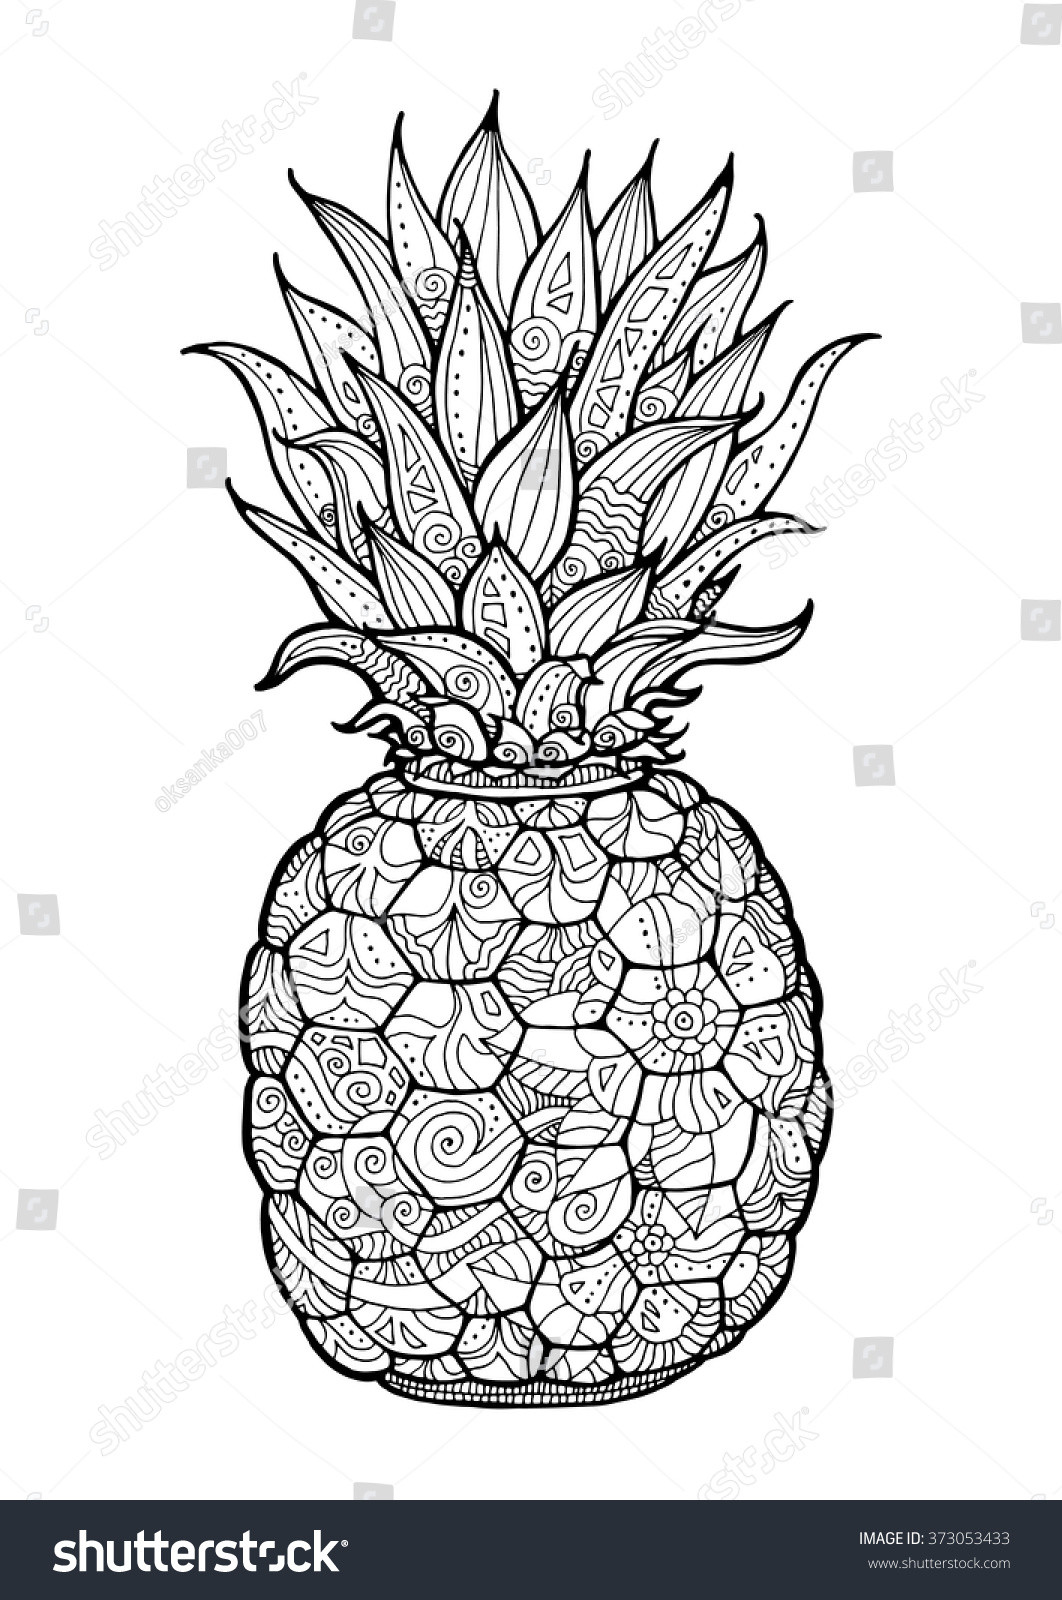 Best ideas about Fruit Coloring Pages For Adults . Save or Pin Ananas Pineapple Exotic Fruit Floral Pattern Stock Vector Now.